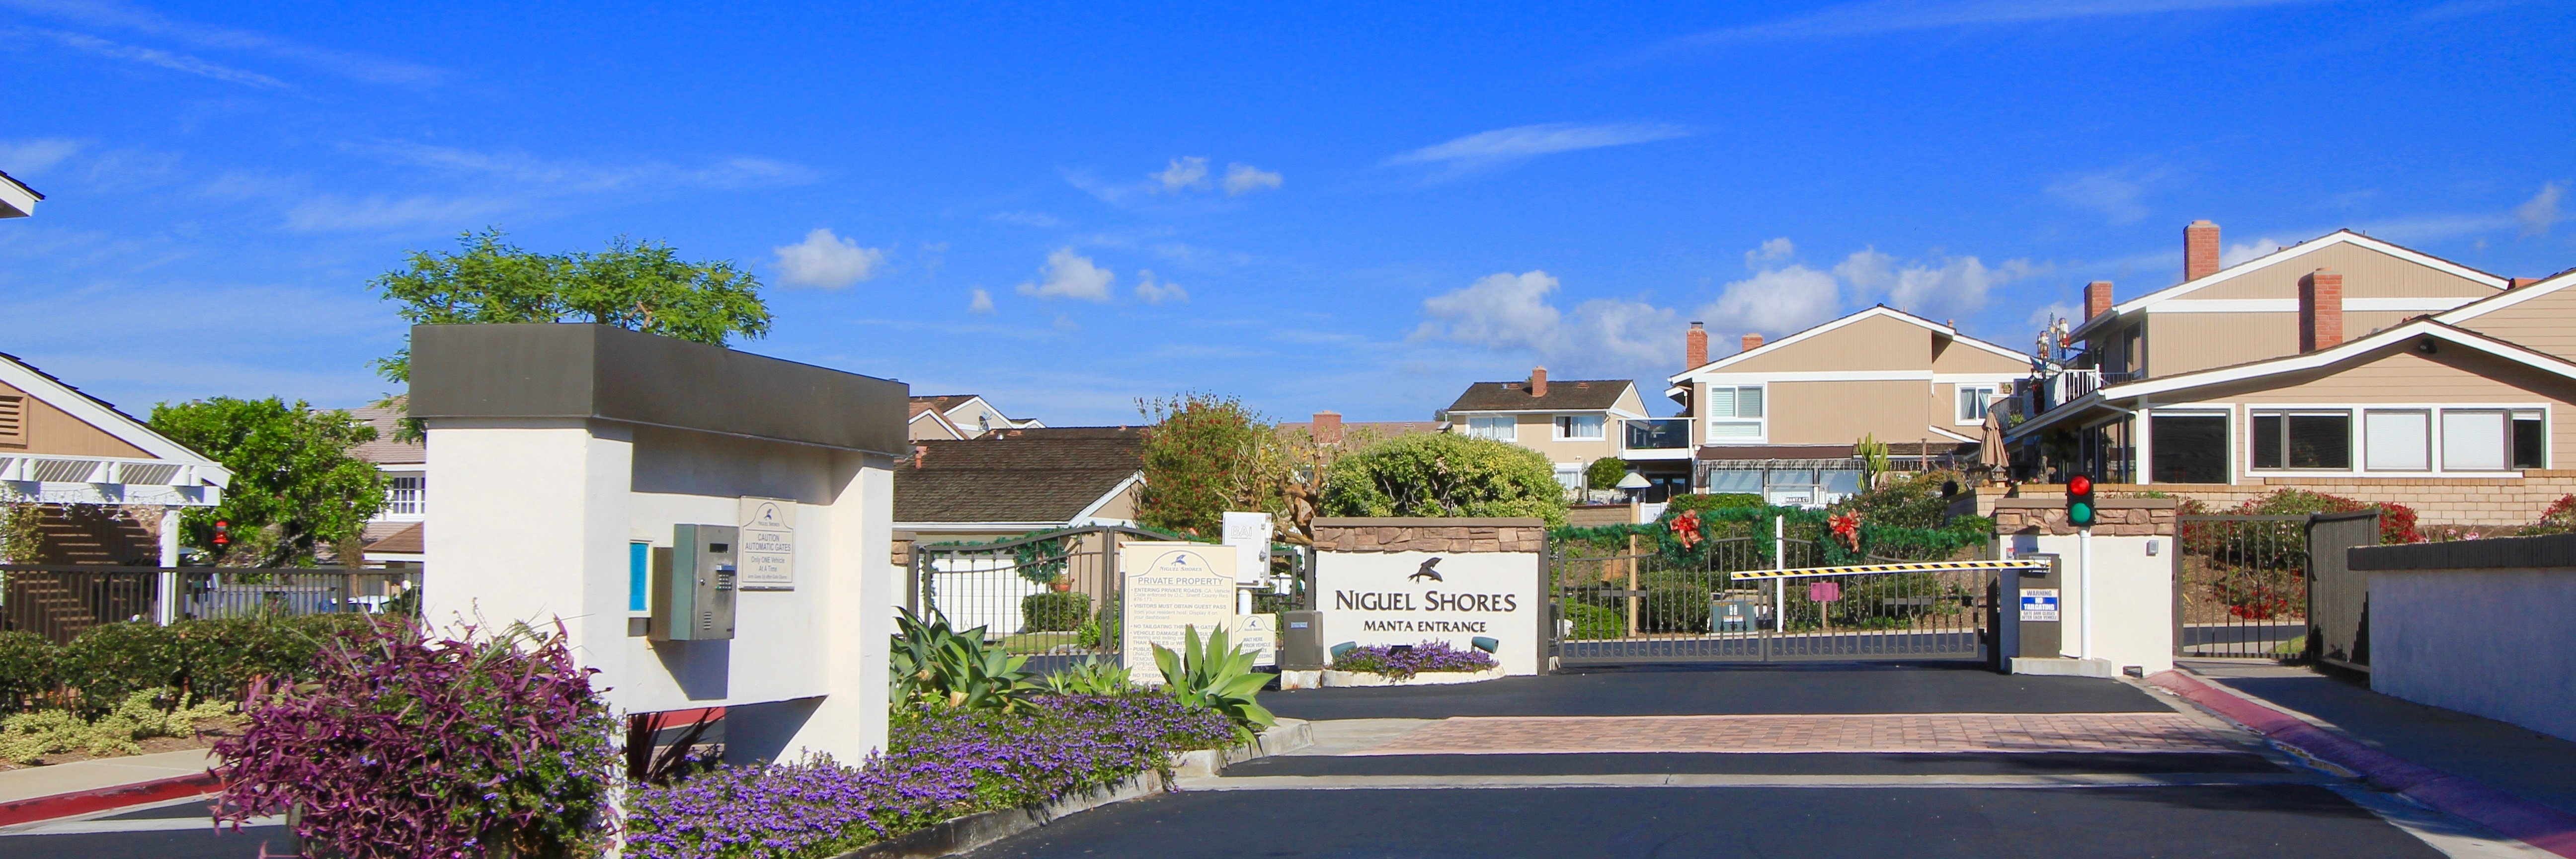 Niguel Shores is a gated community located in Dana Point California